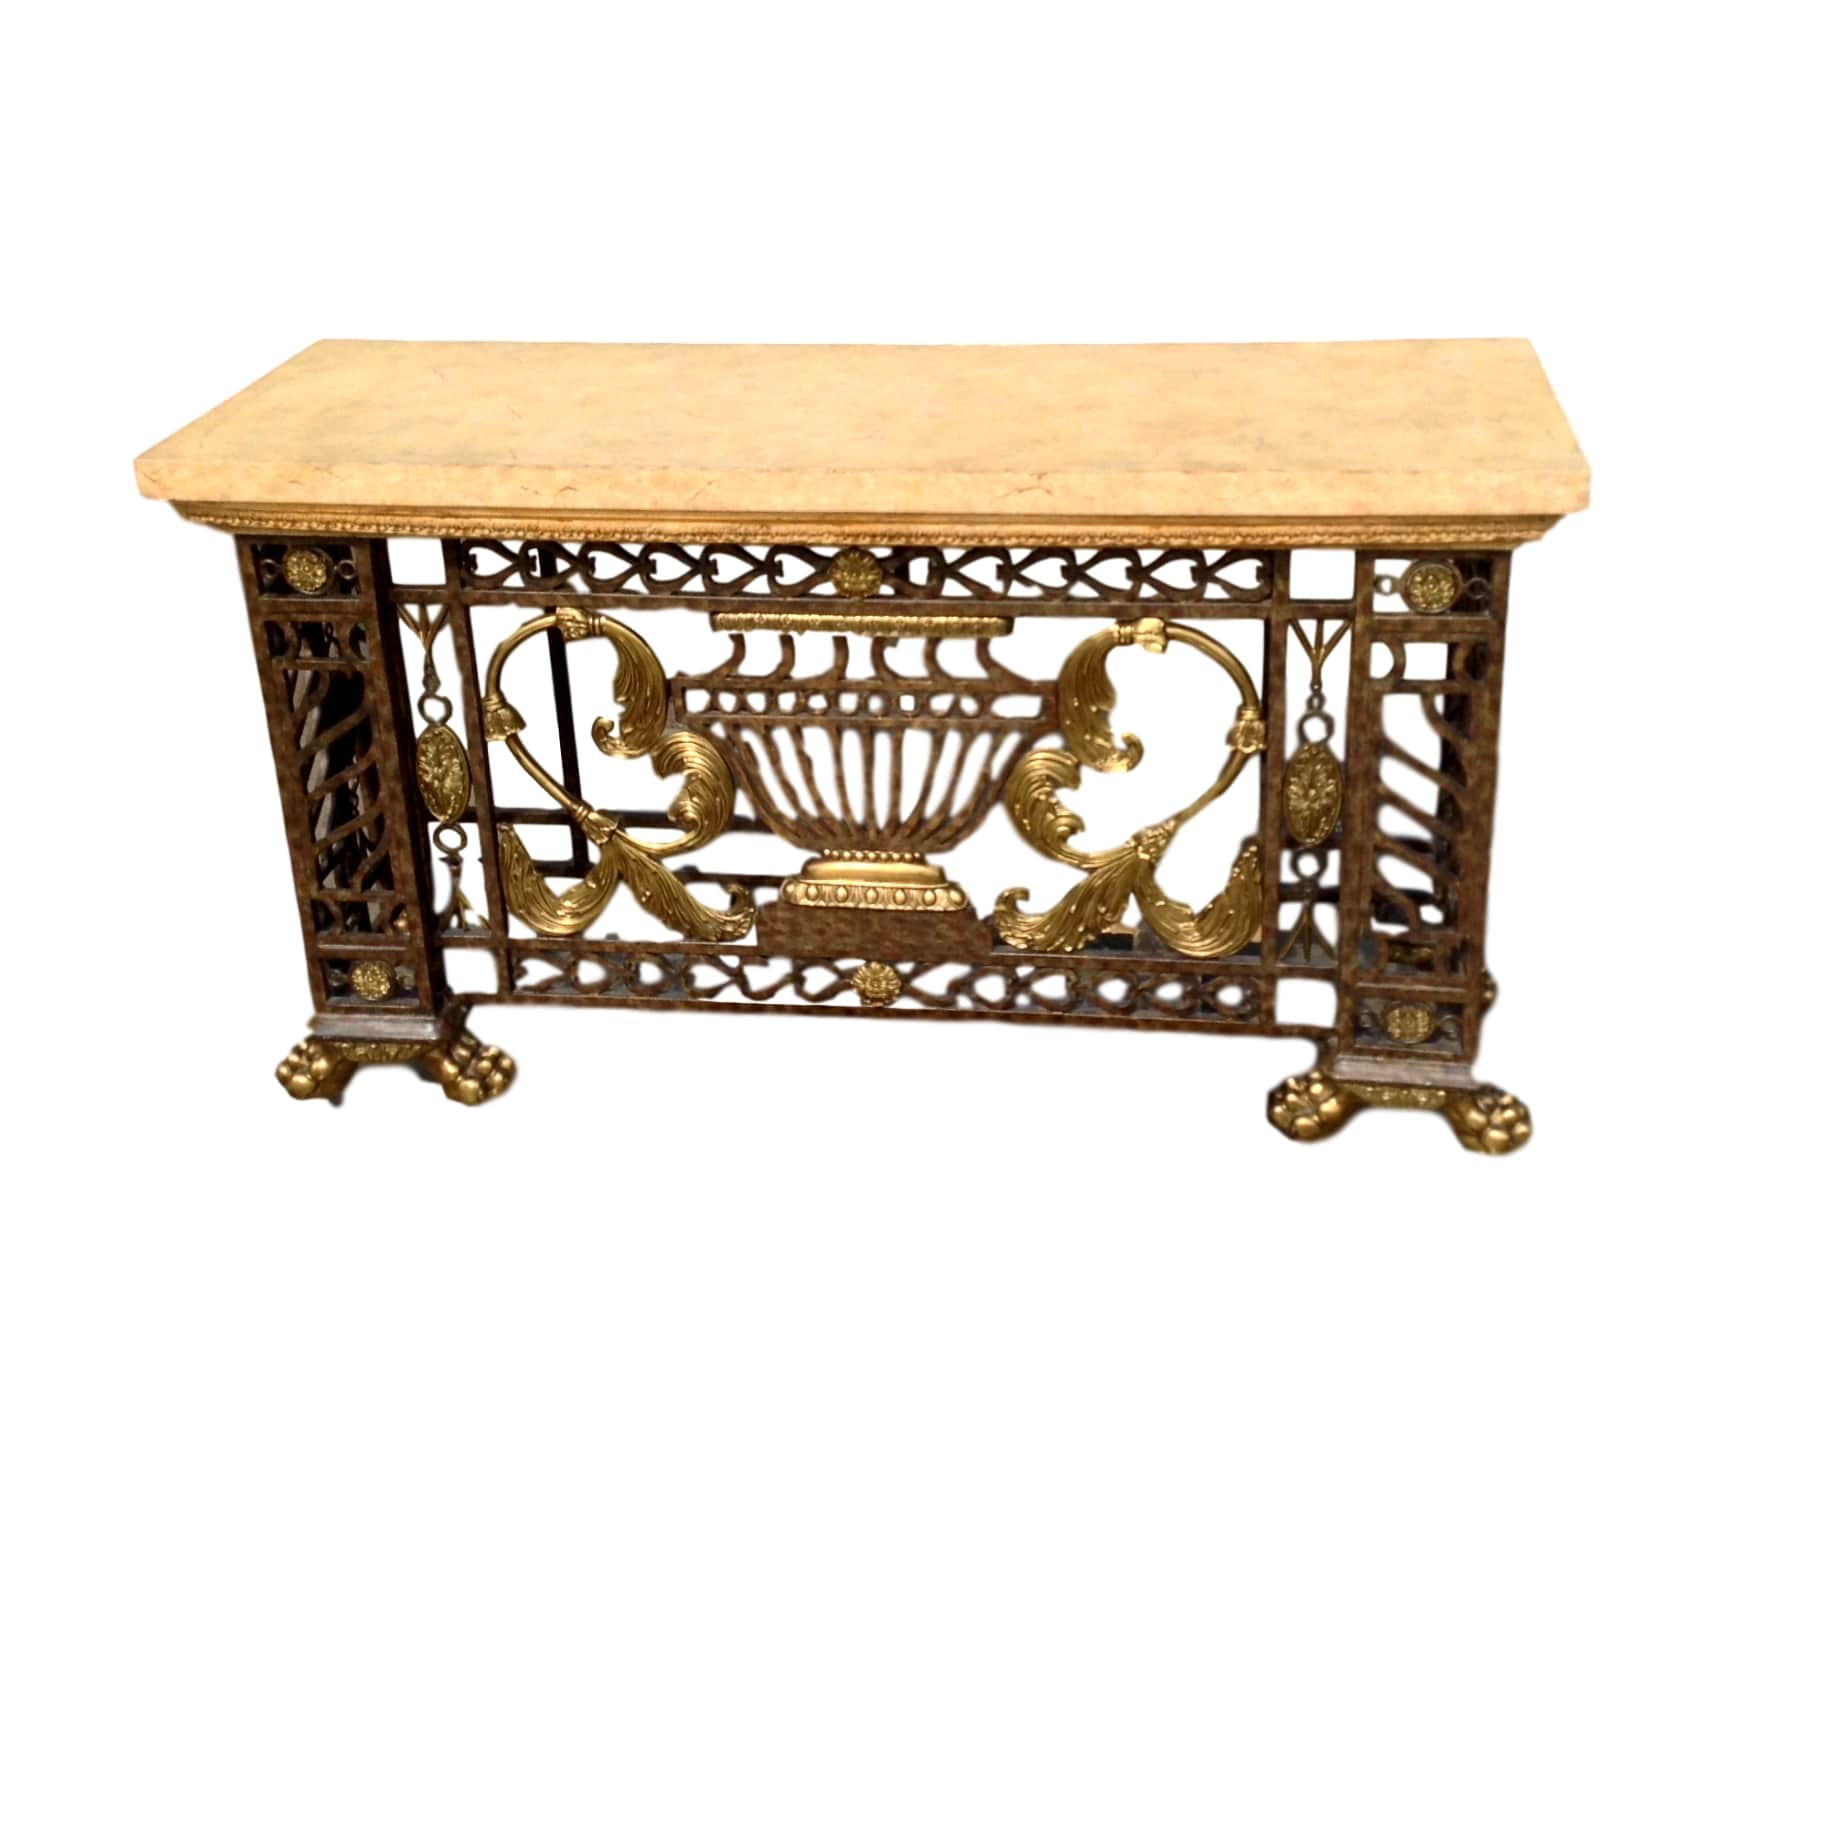 Miraculous Beautiful Brass And Iron Sofa Entry Table Pabps2019 Chair Design Images Pabps2019Com